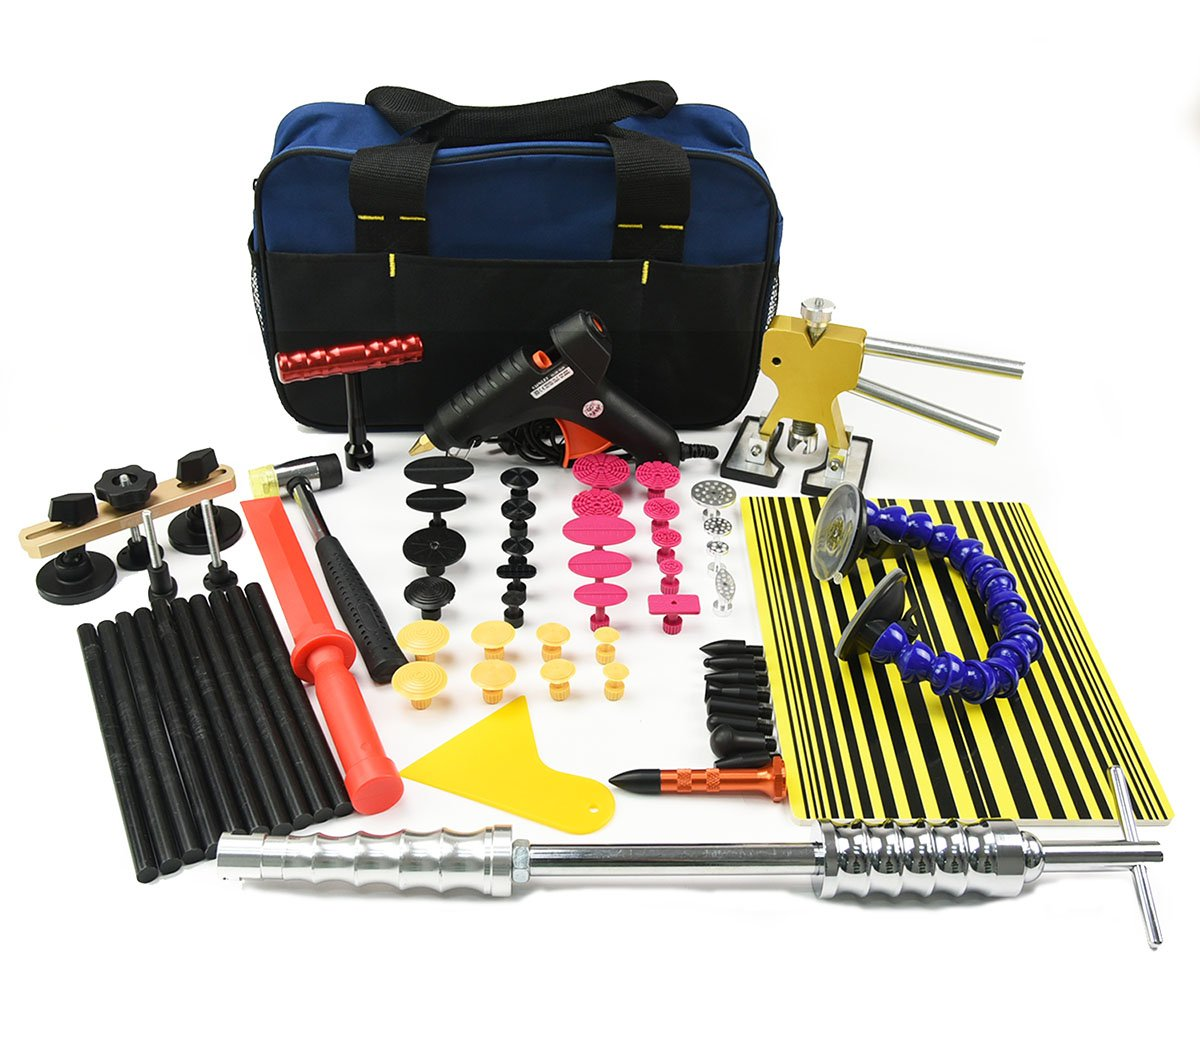 PDR Tool Kit Furuix 56pcs PDR Slide Hammer Dent Lifter Dent Removal Repair Tool Kits Paintless Dent Repair Hail Removal Tool Automotive Tool PDR Tools DIY Car Dent Repair Kit